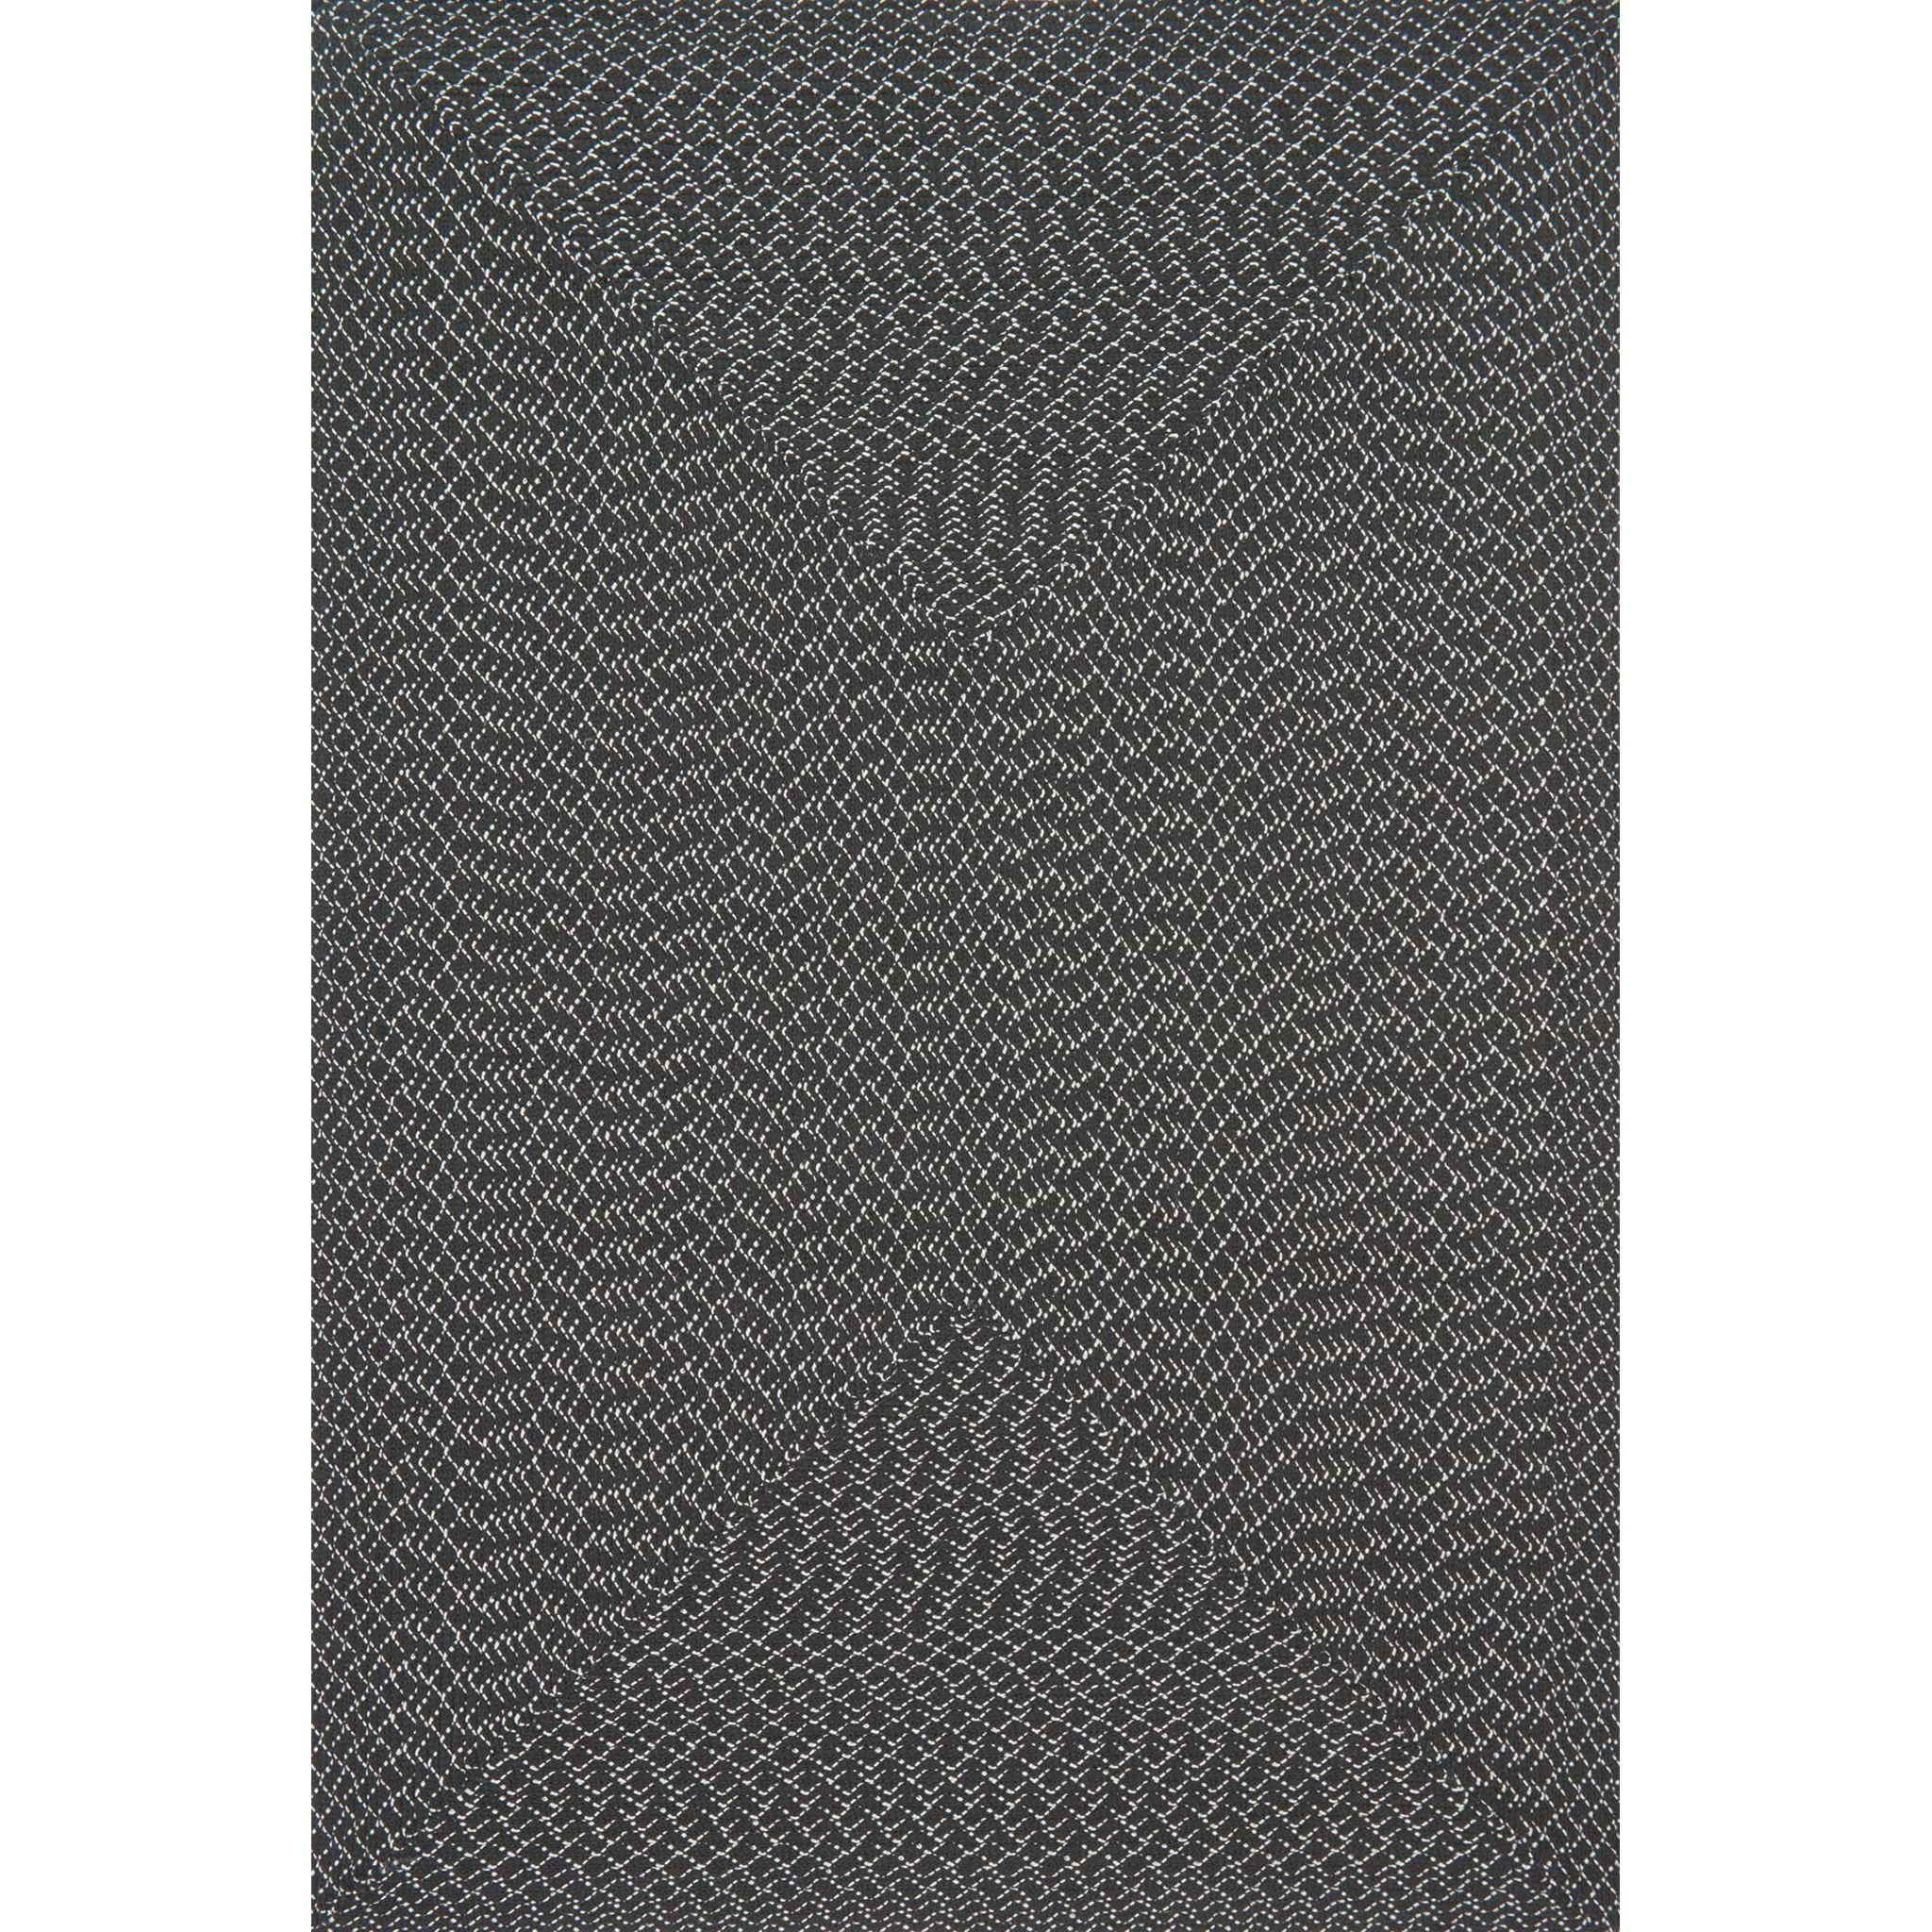 "Wylie 9'-3"" X 13' Rug by Loloi Rugs at Pedigo Furniture"